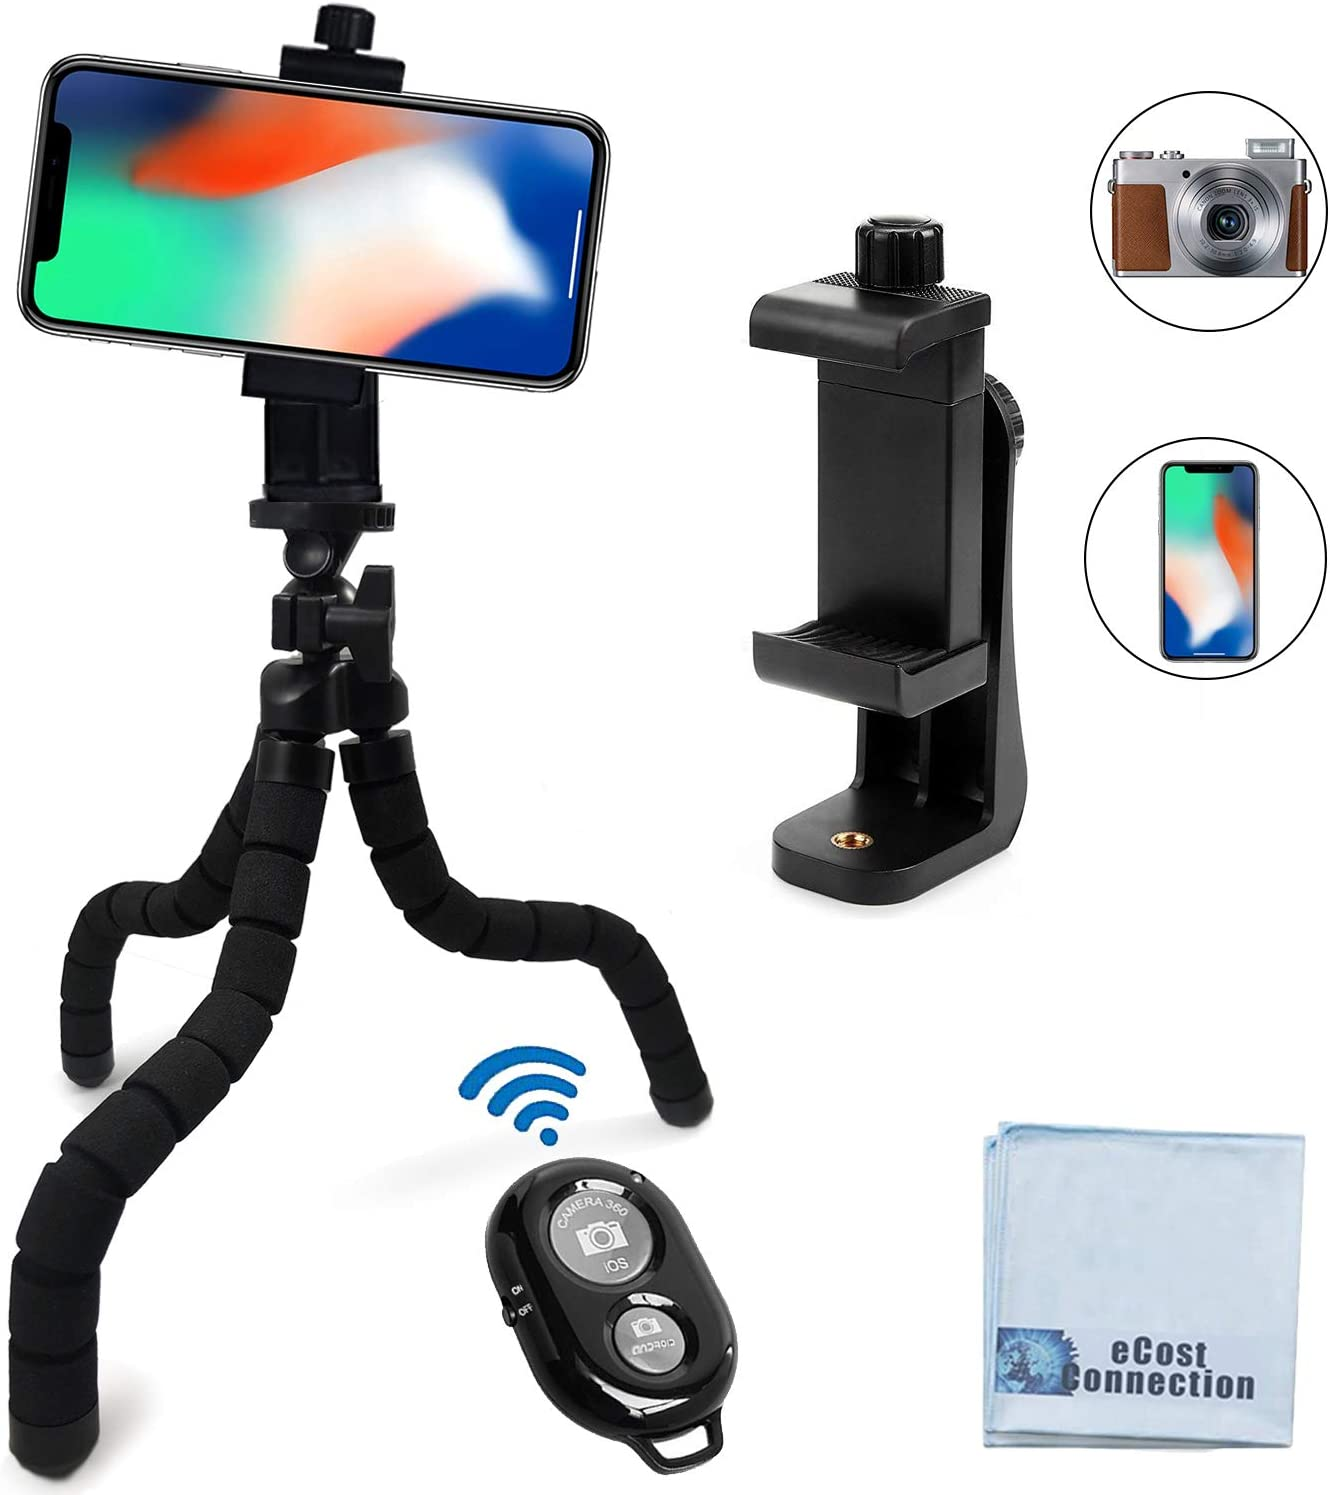 """Acuvar 10"""" inch Flexible Tripod with Quick Release + Universal Rotating Mount for All Smartphones + Wireless Remote Shutter for Smartphones + an eCostConnection Microfiber Cloth"""